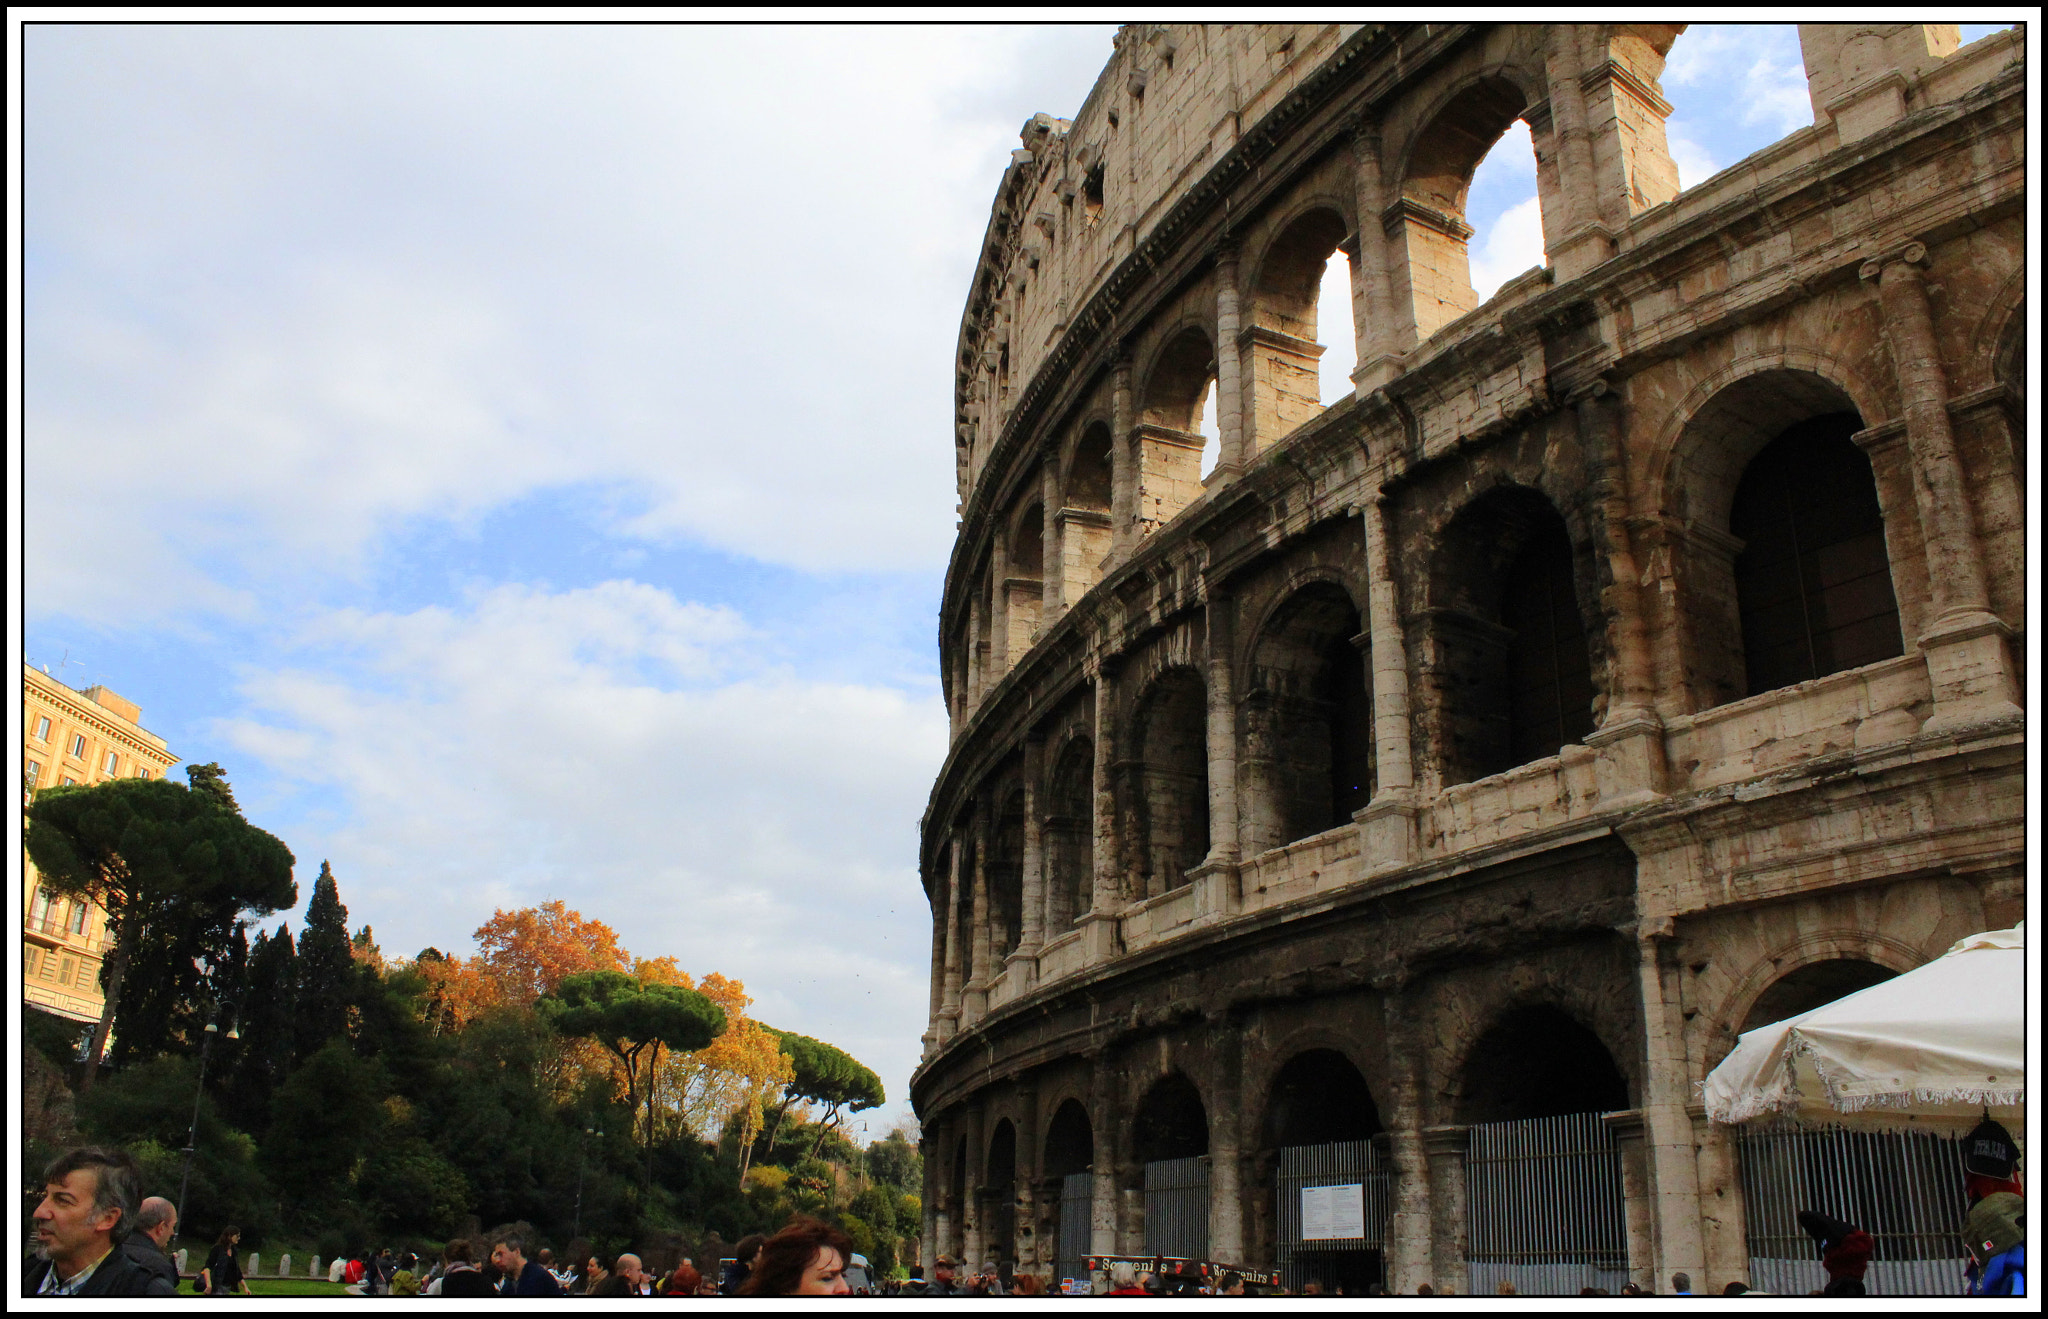 Photograph Colosseum, Rome by HARINI RAJAGOPAL on 500px